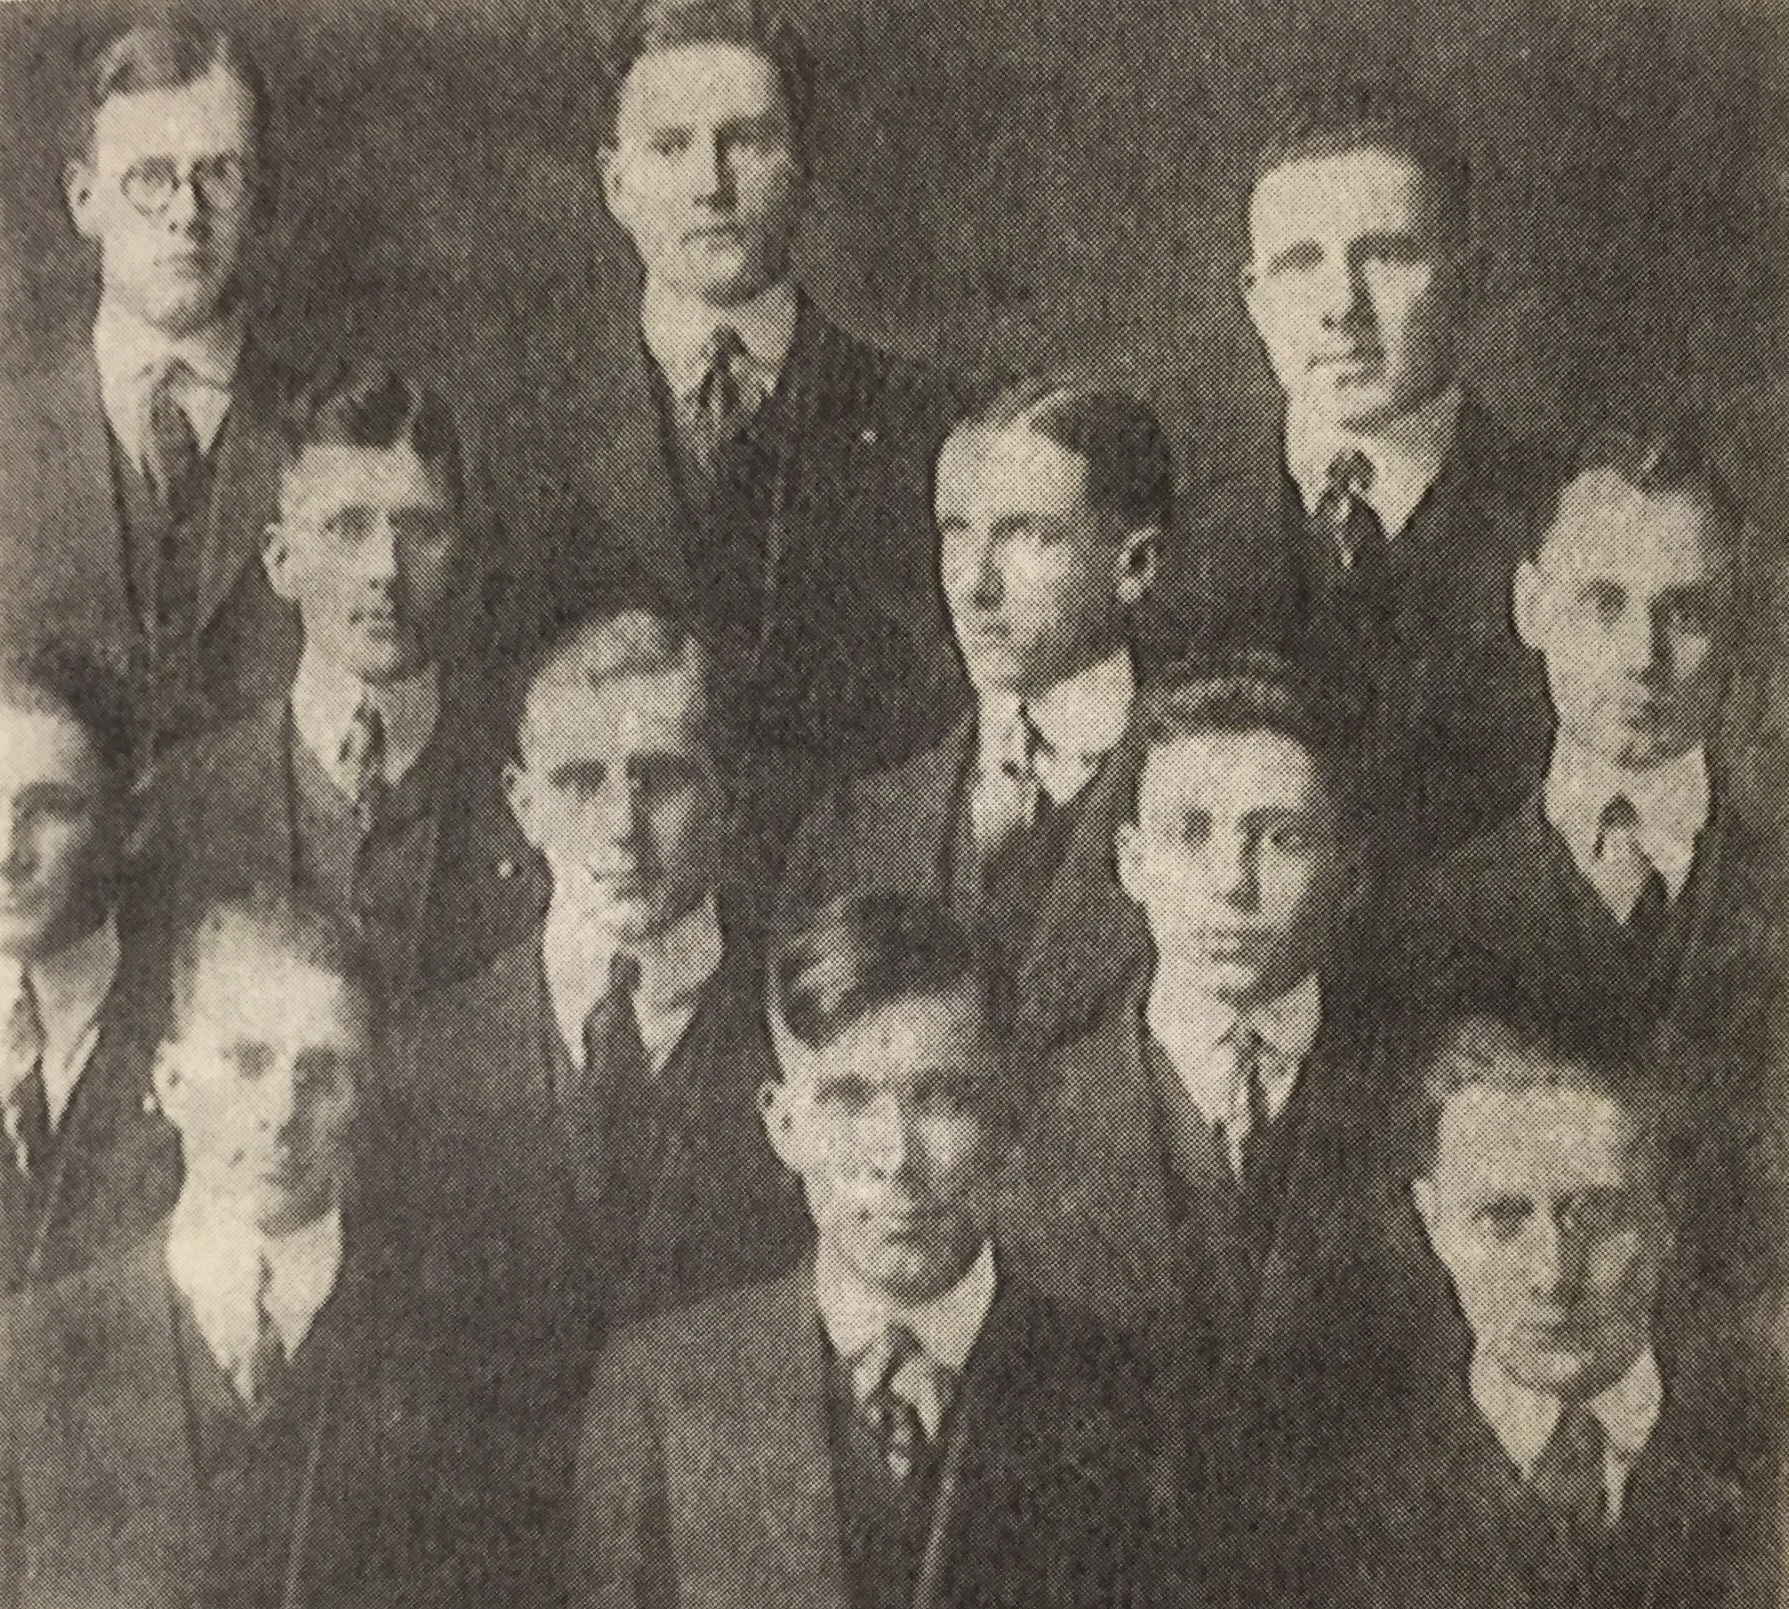 The IU Debate Team, 1916. Willkie is front row, center. Image courtesy of Indiana University, Bloomington.